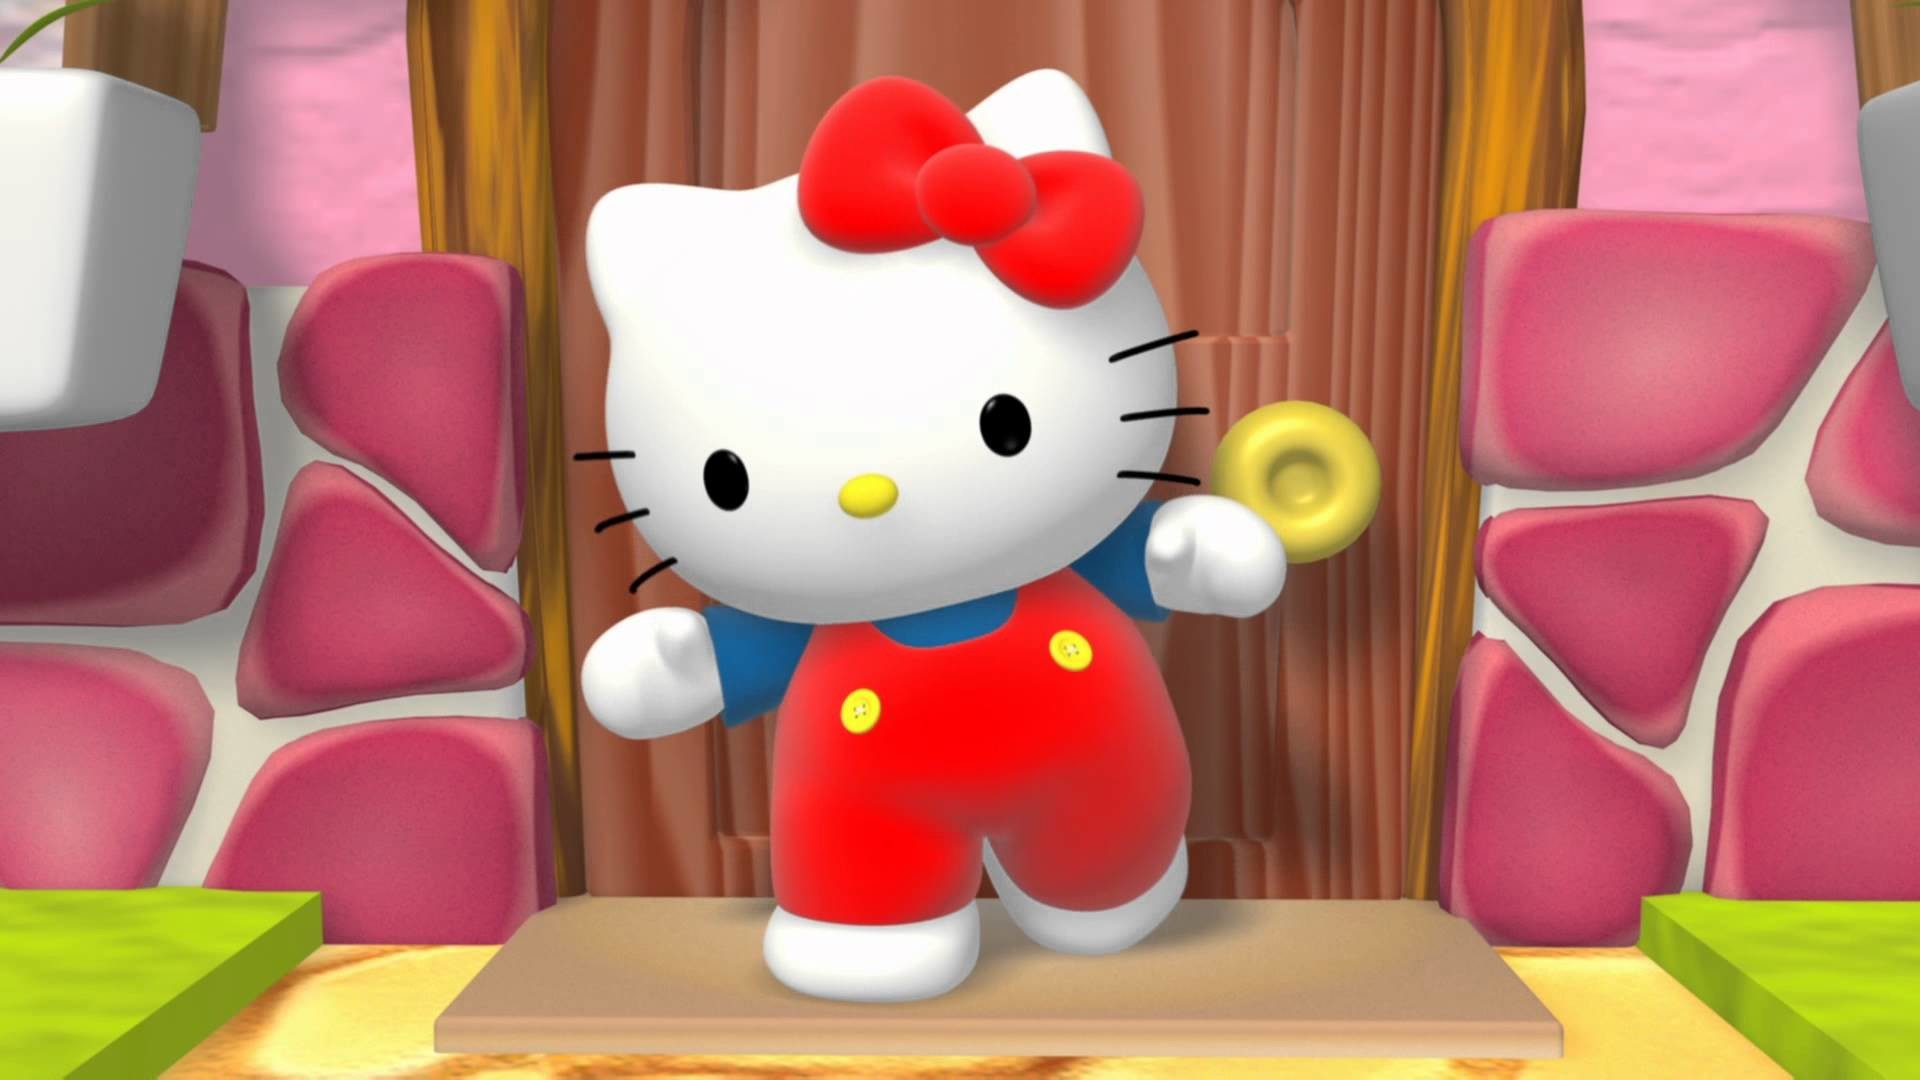 Cute Sanrio Wallpapers Hello Kitty And Friends Wallpaper 57 Images